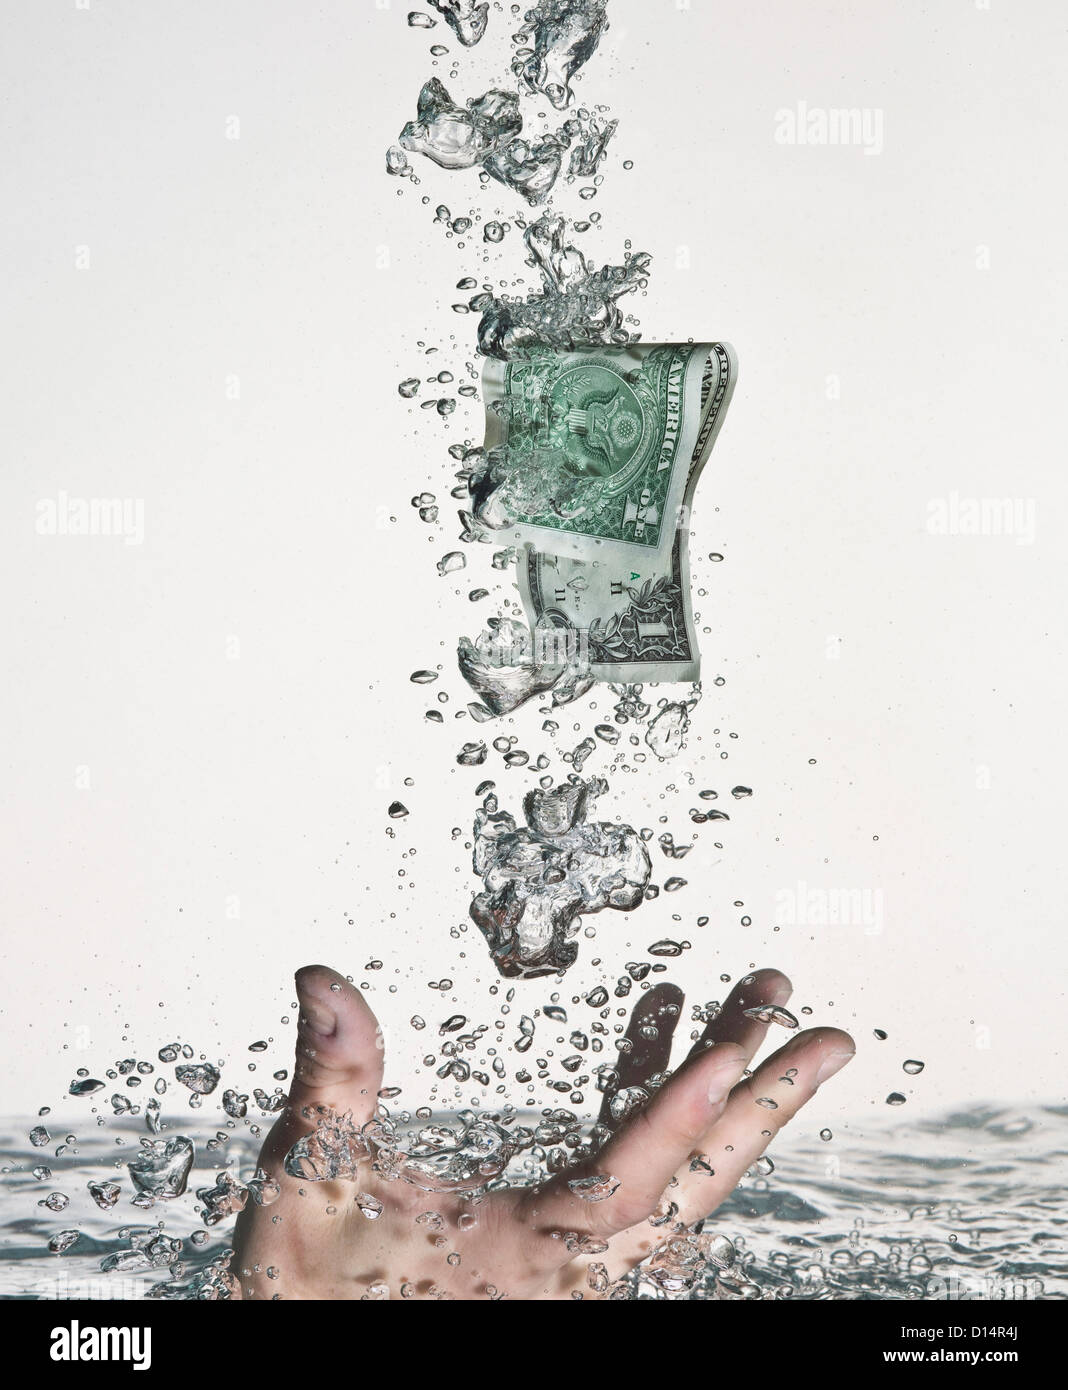 Main agrippant dollar bill in water Photo Stock